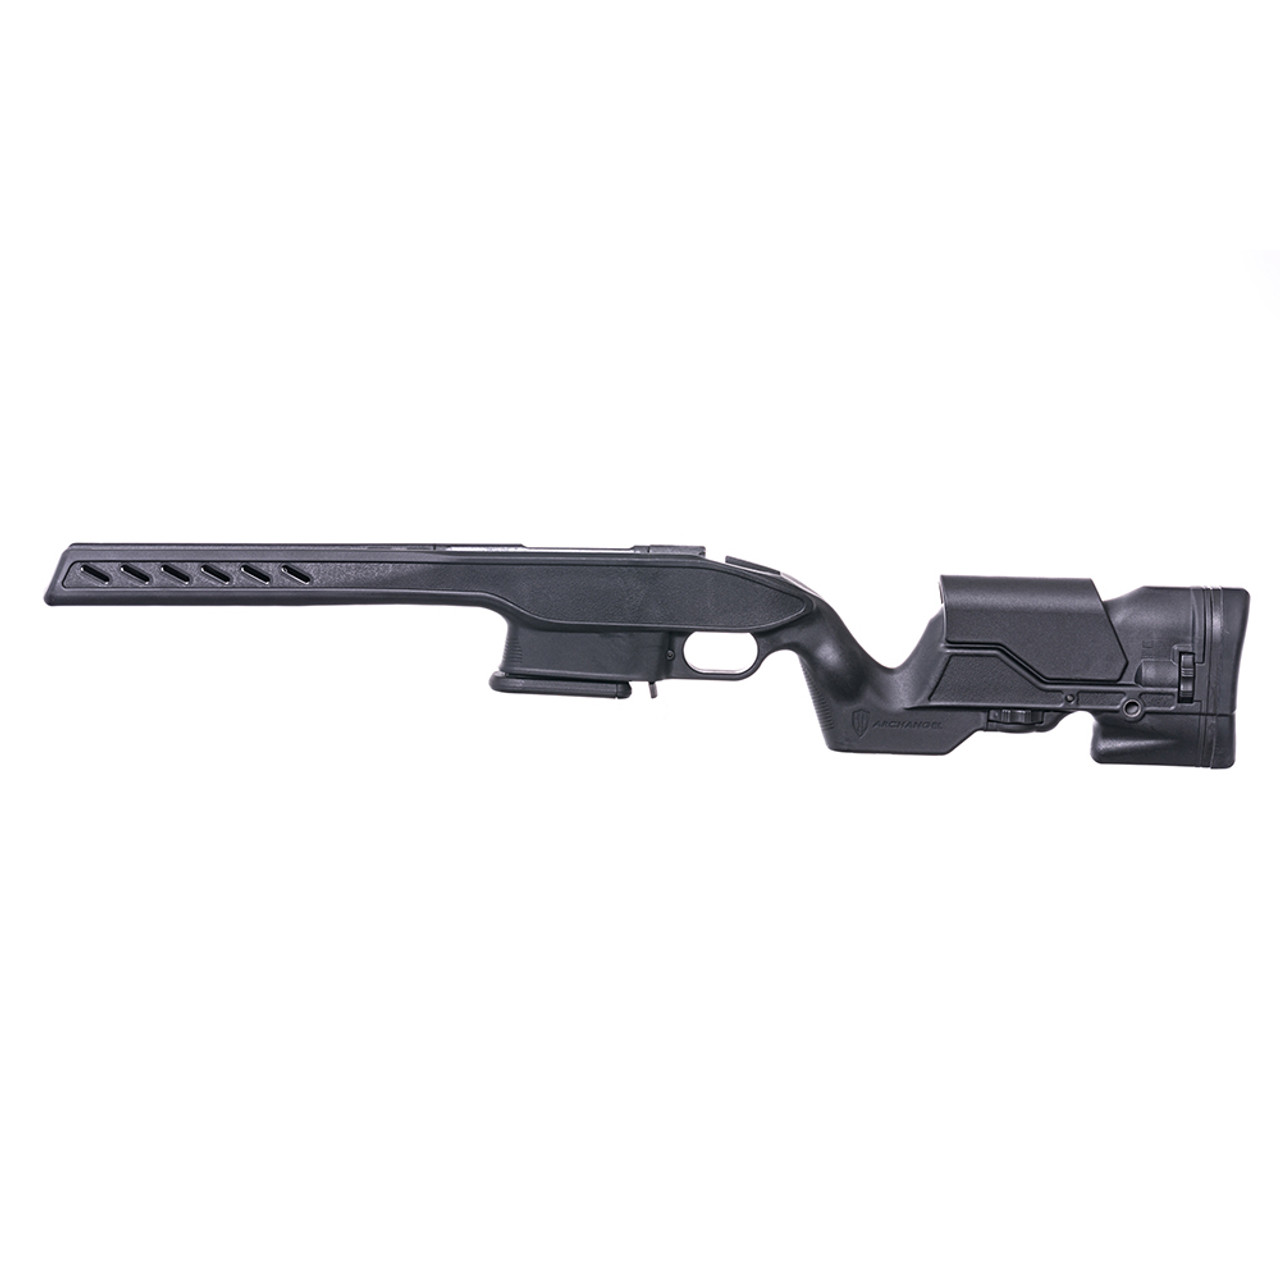 Archangel® Precision Elite Stock for the Savage® Model 10 / 11 Short Action - Black Polymer Includes AA133-05 (7) Rd with (5) Rd Limiter TYPE D Magazine